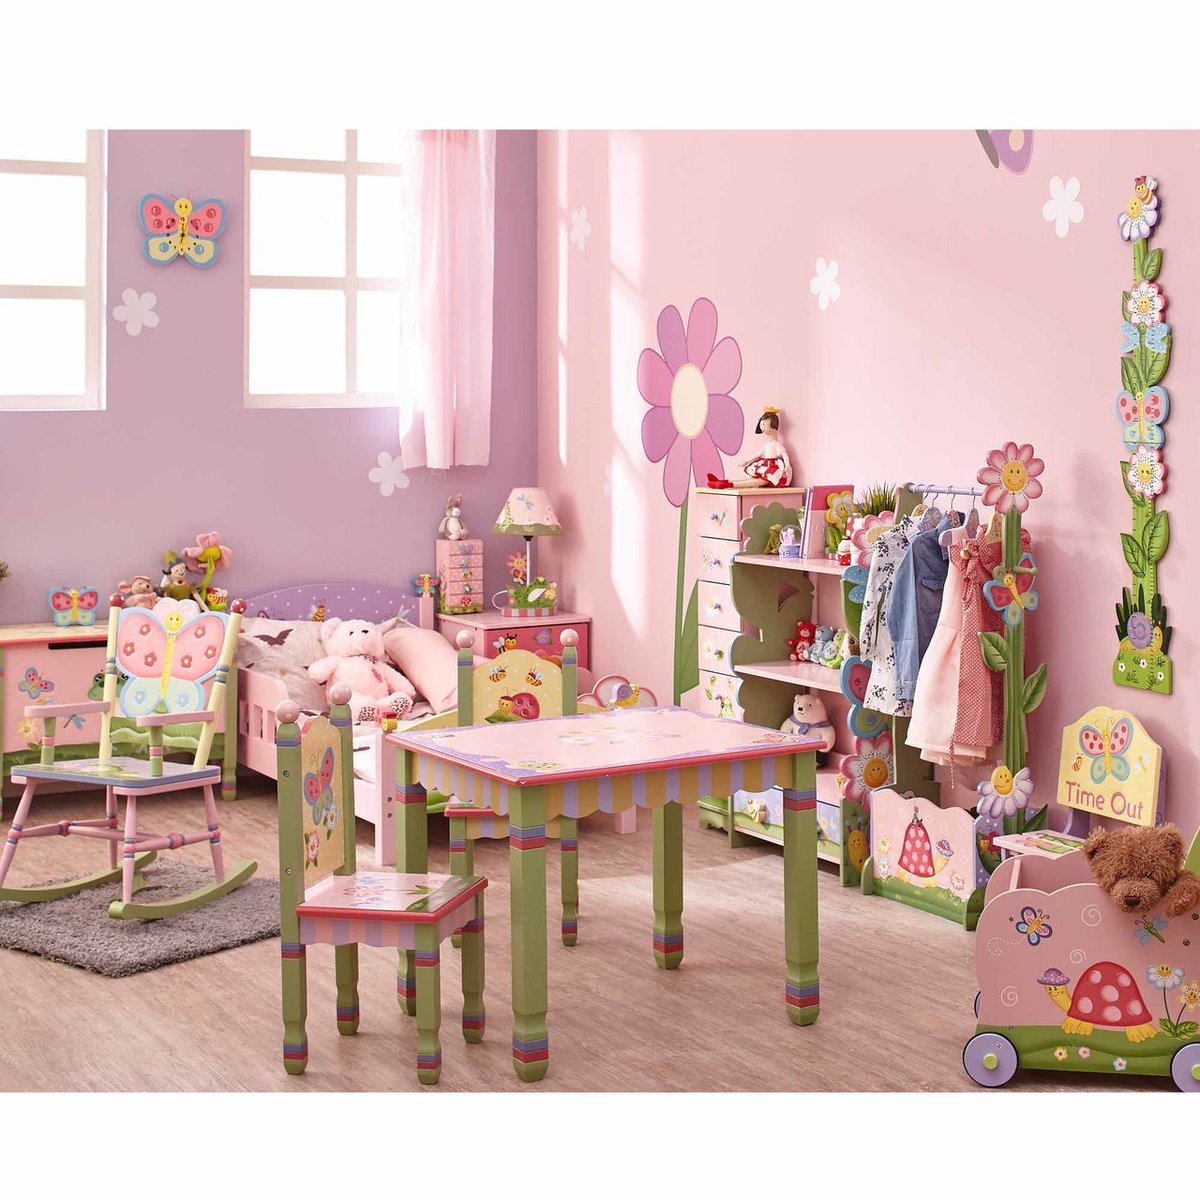 painted kids furniture. modren furniture 0 replies retweets likes throughout painted kids furniture m